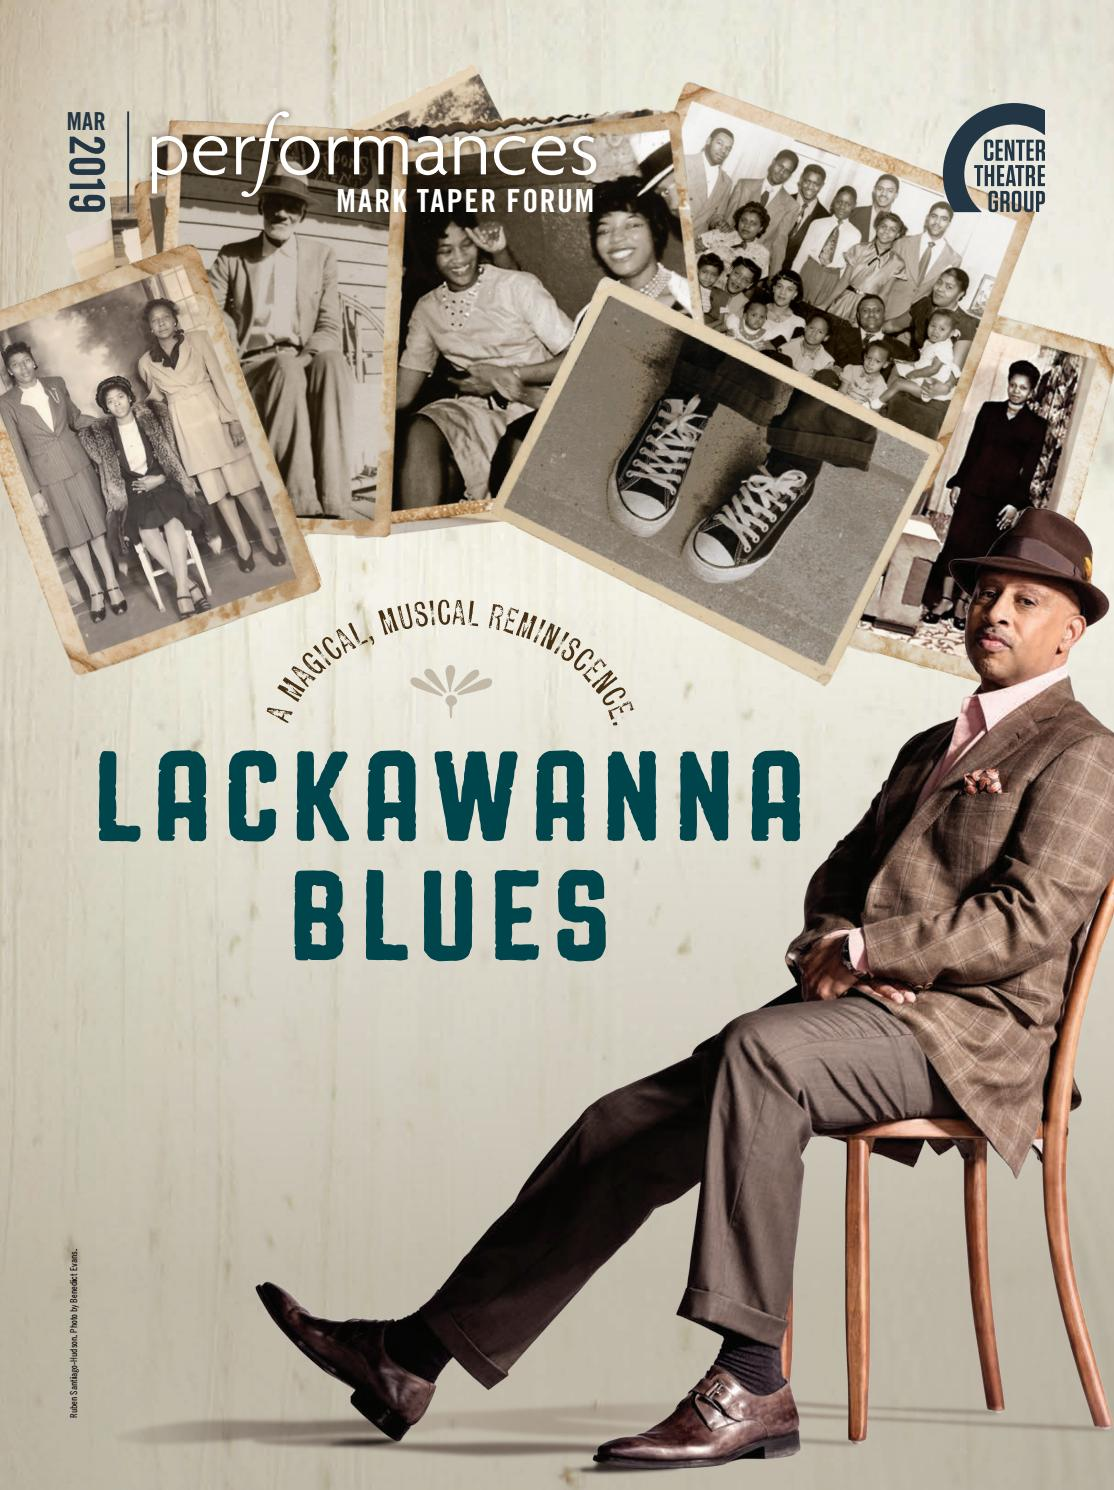 Lackawanna Blues At Center Theatre Group March 2019 By